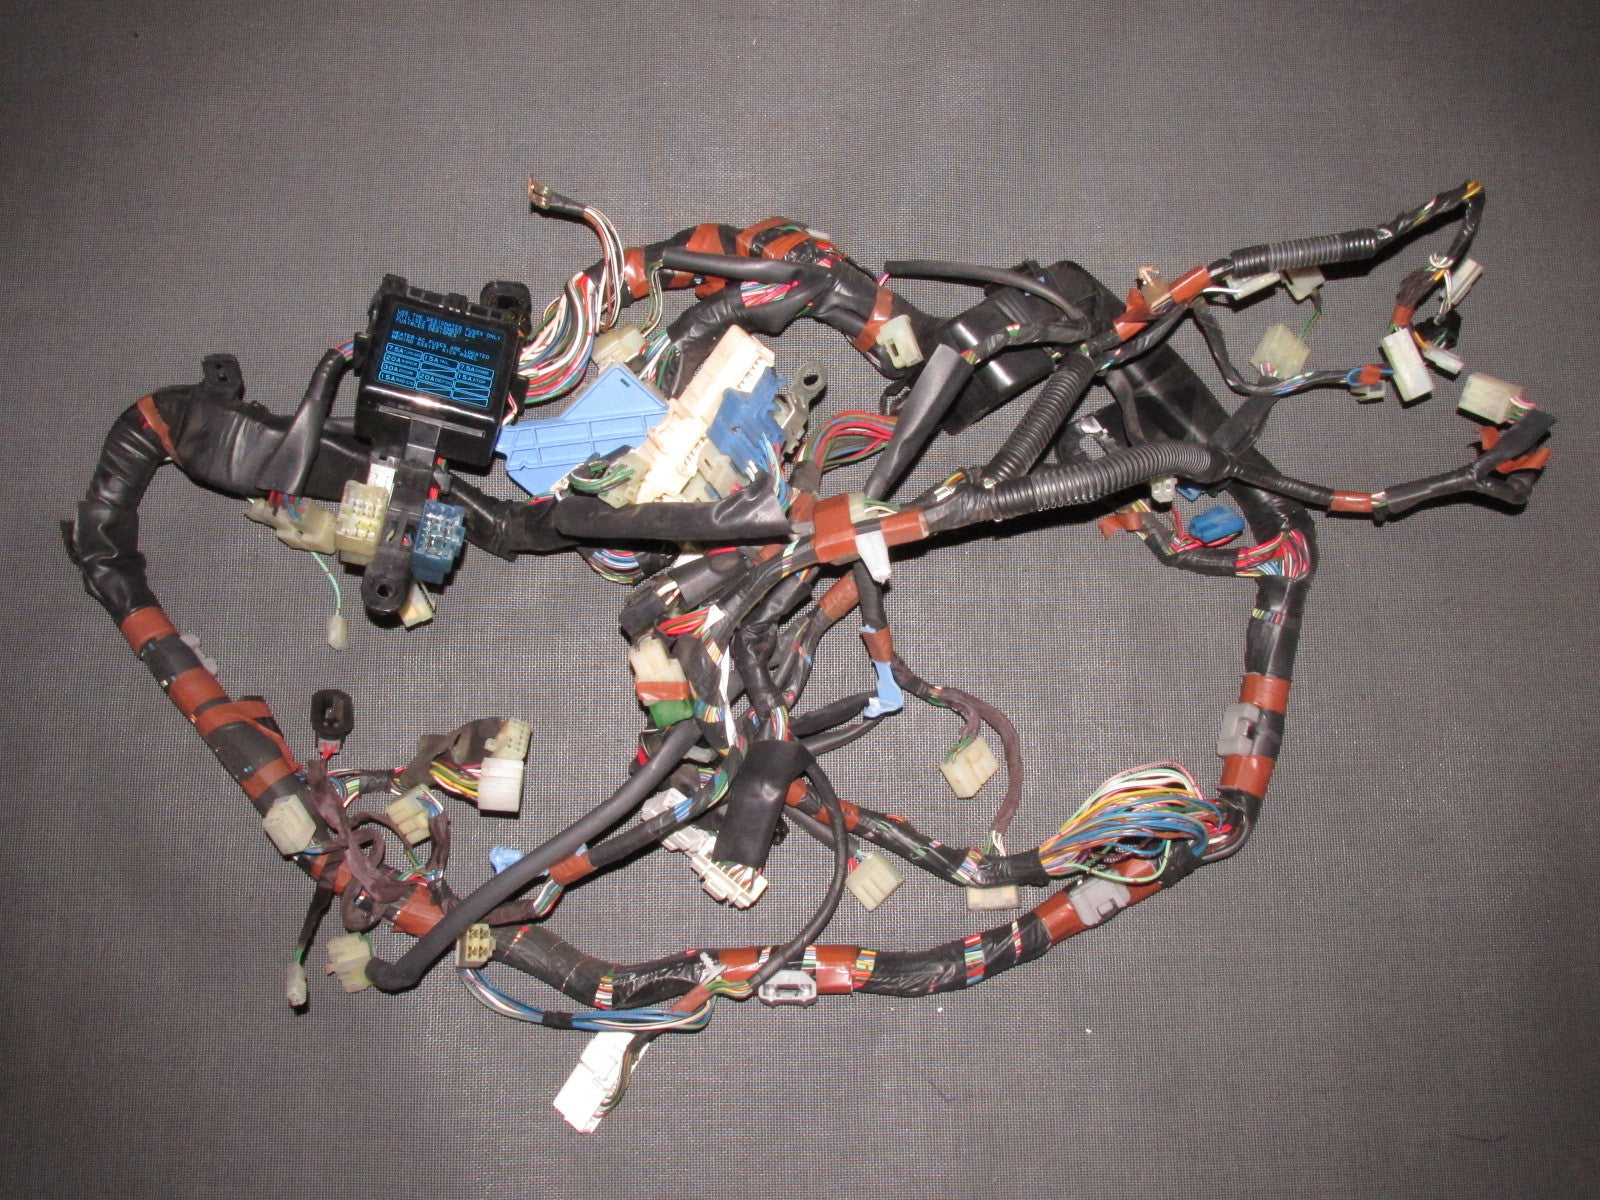 IMG_7626?v=1411001690 85 86 87 88 89 toyota mr2 oem interior fuse box dash wiring mr2 engine bay fuse box at panicattacktreatment.co